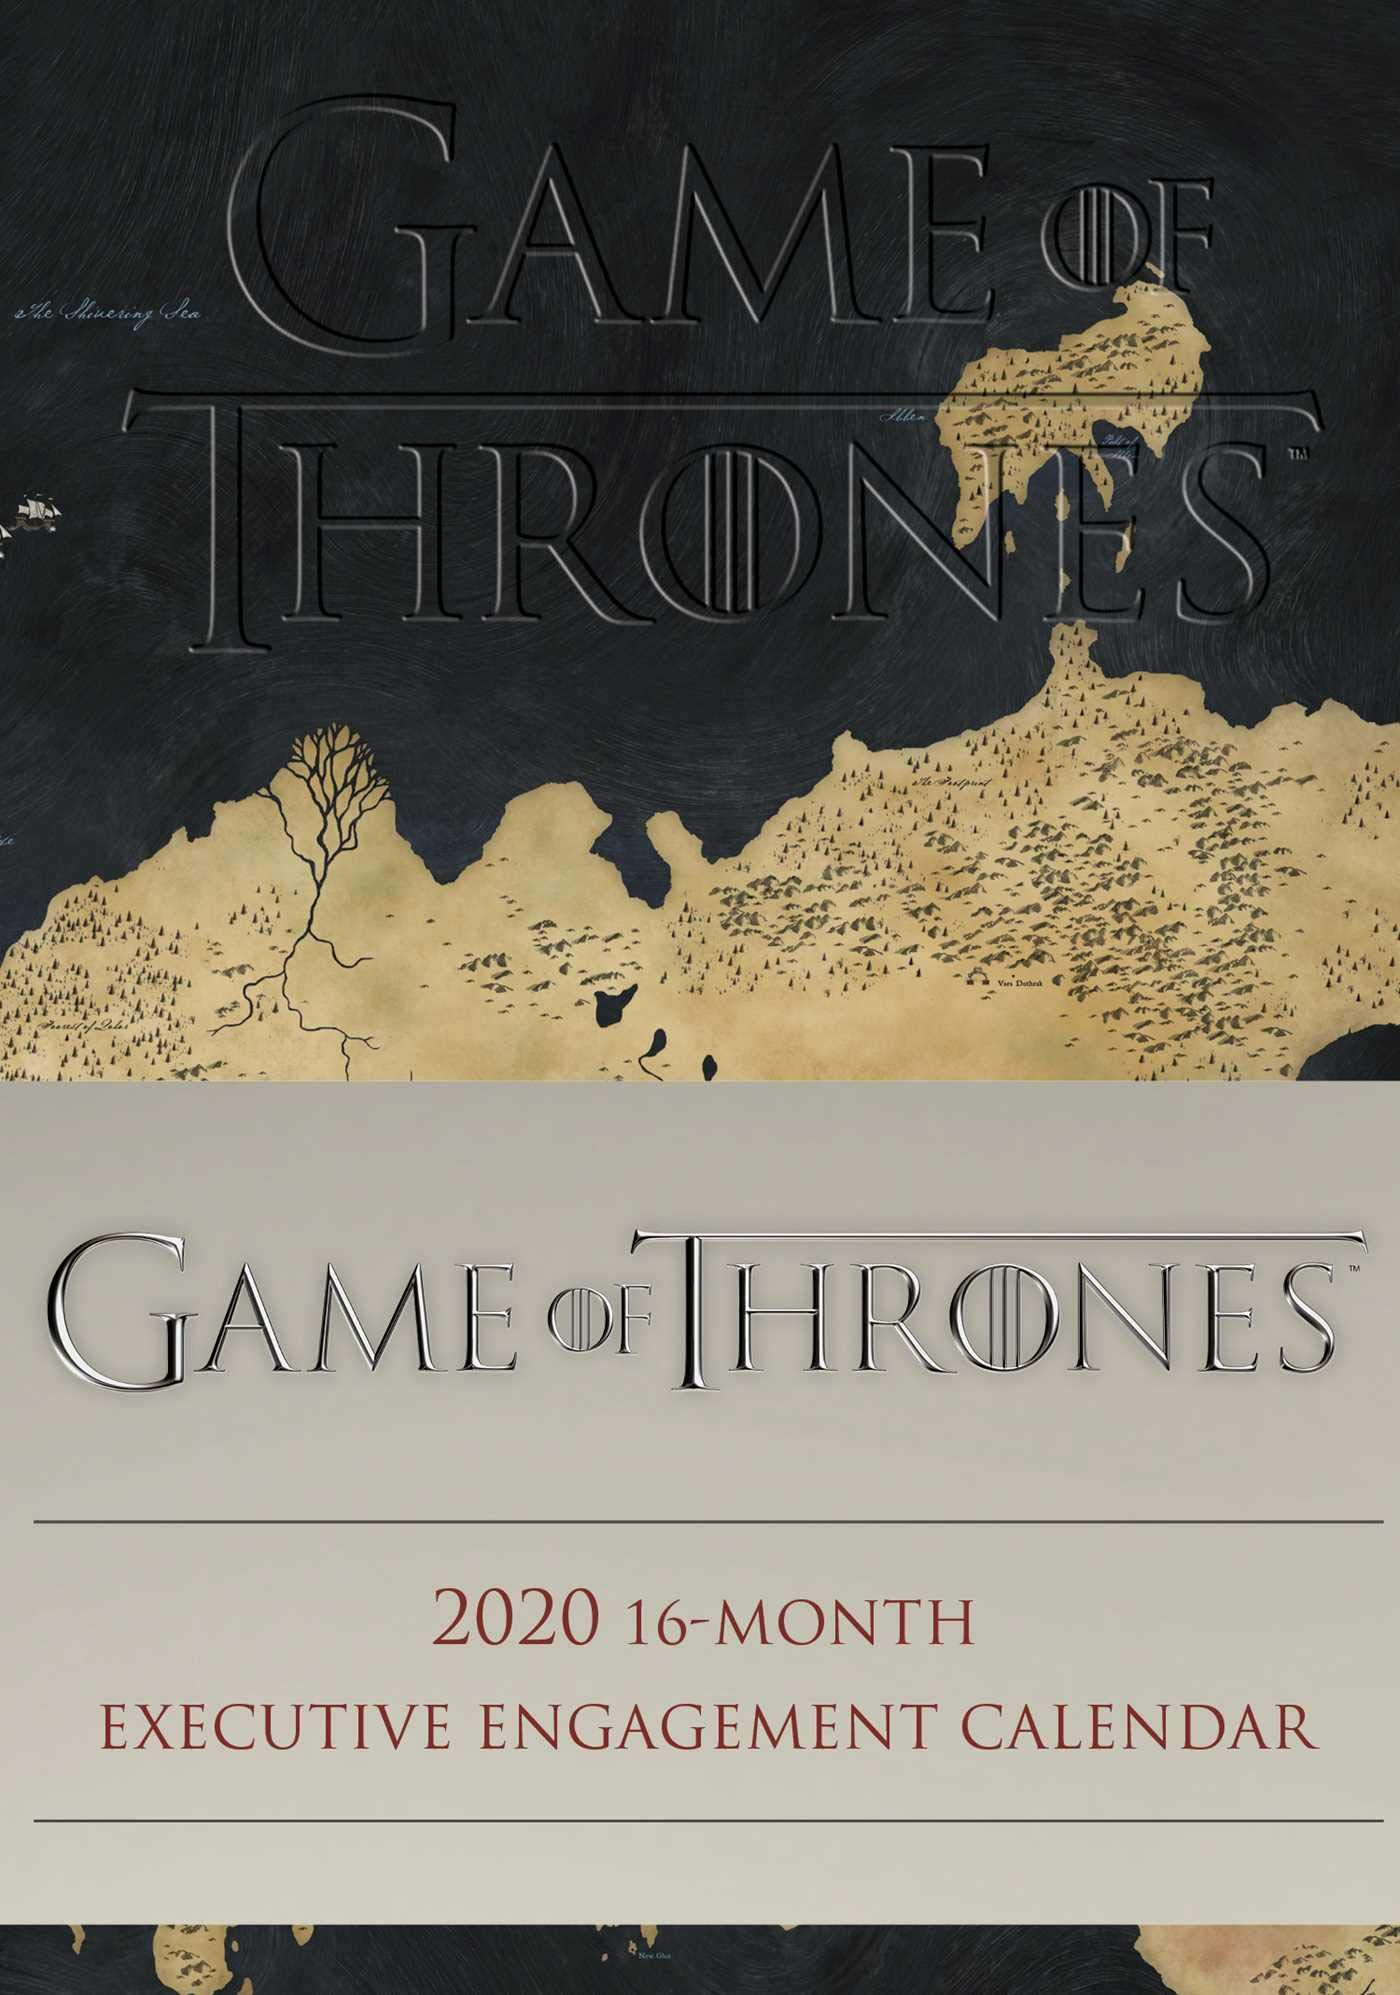 game of thrones 2020 16 month executive engagement calendar